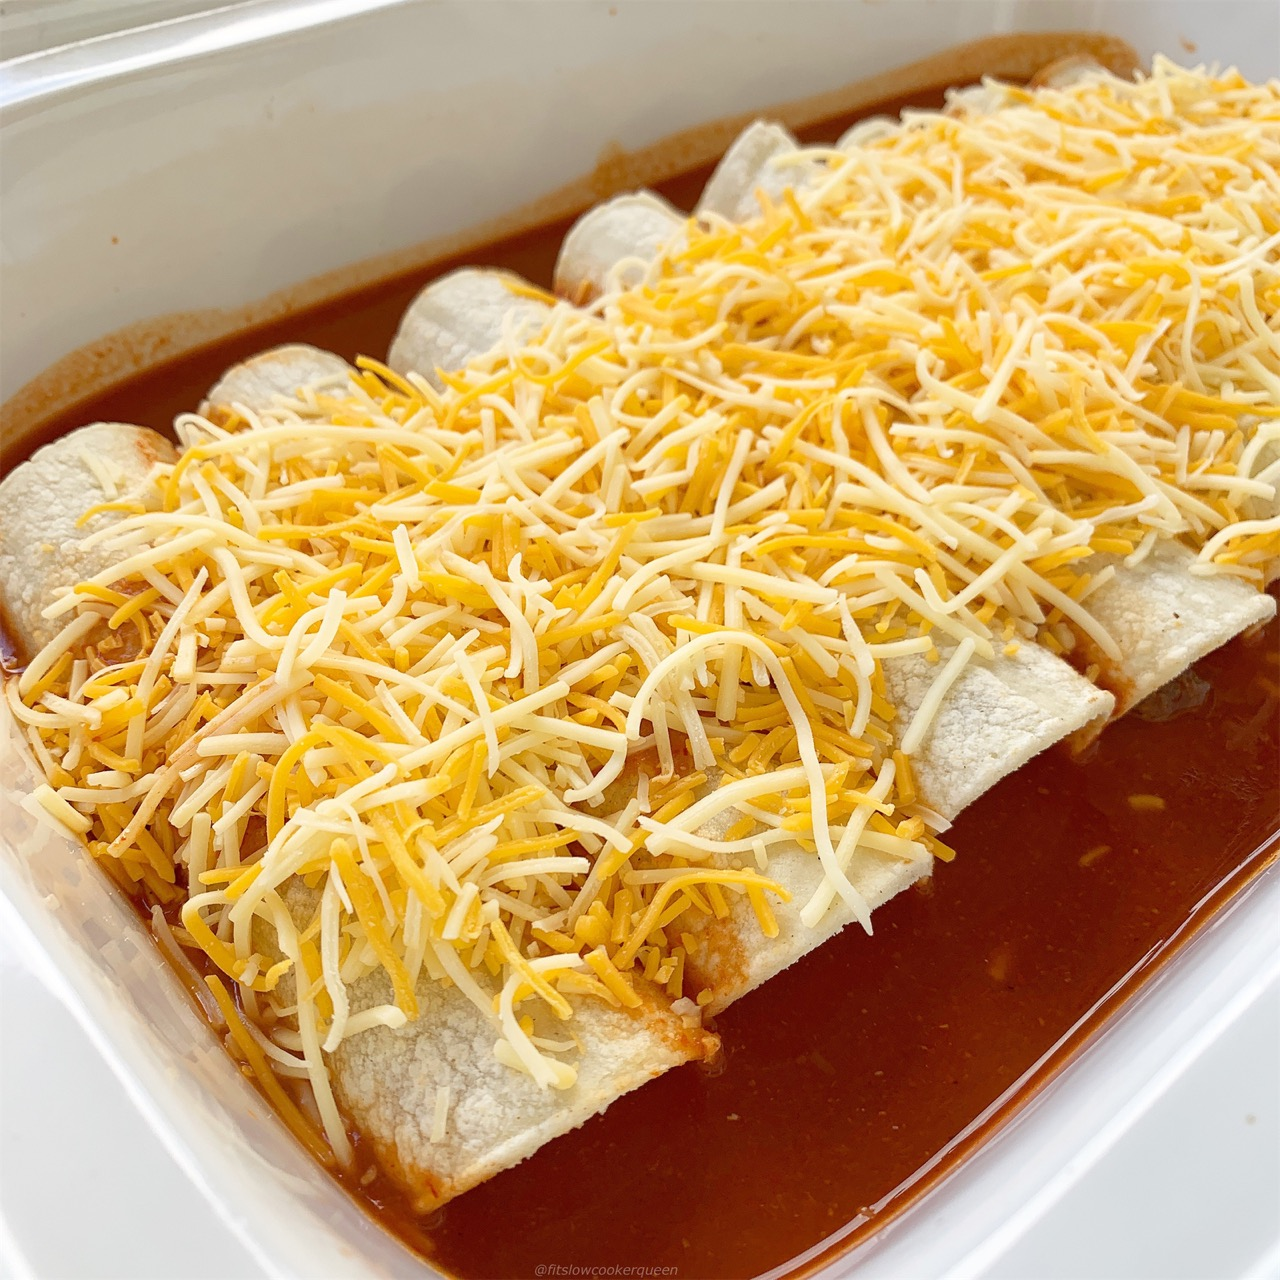 Easy slow cooker enchiladas! Free up your oven by letting your slow cooker do the work with this family-friendly Mexican recipe.